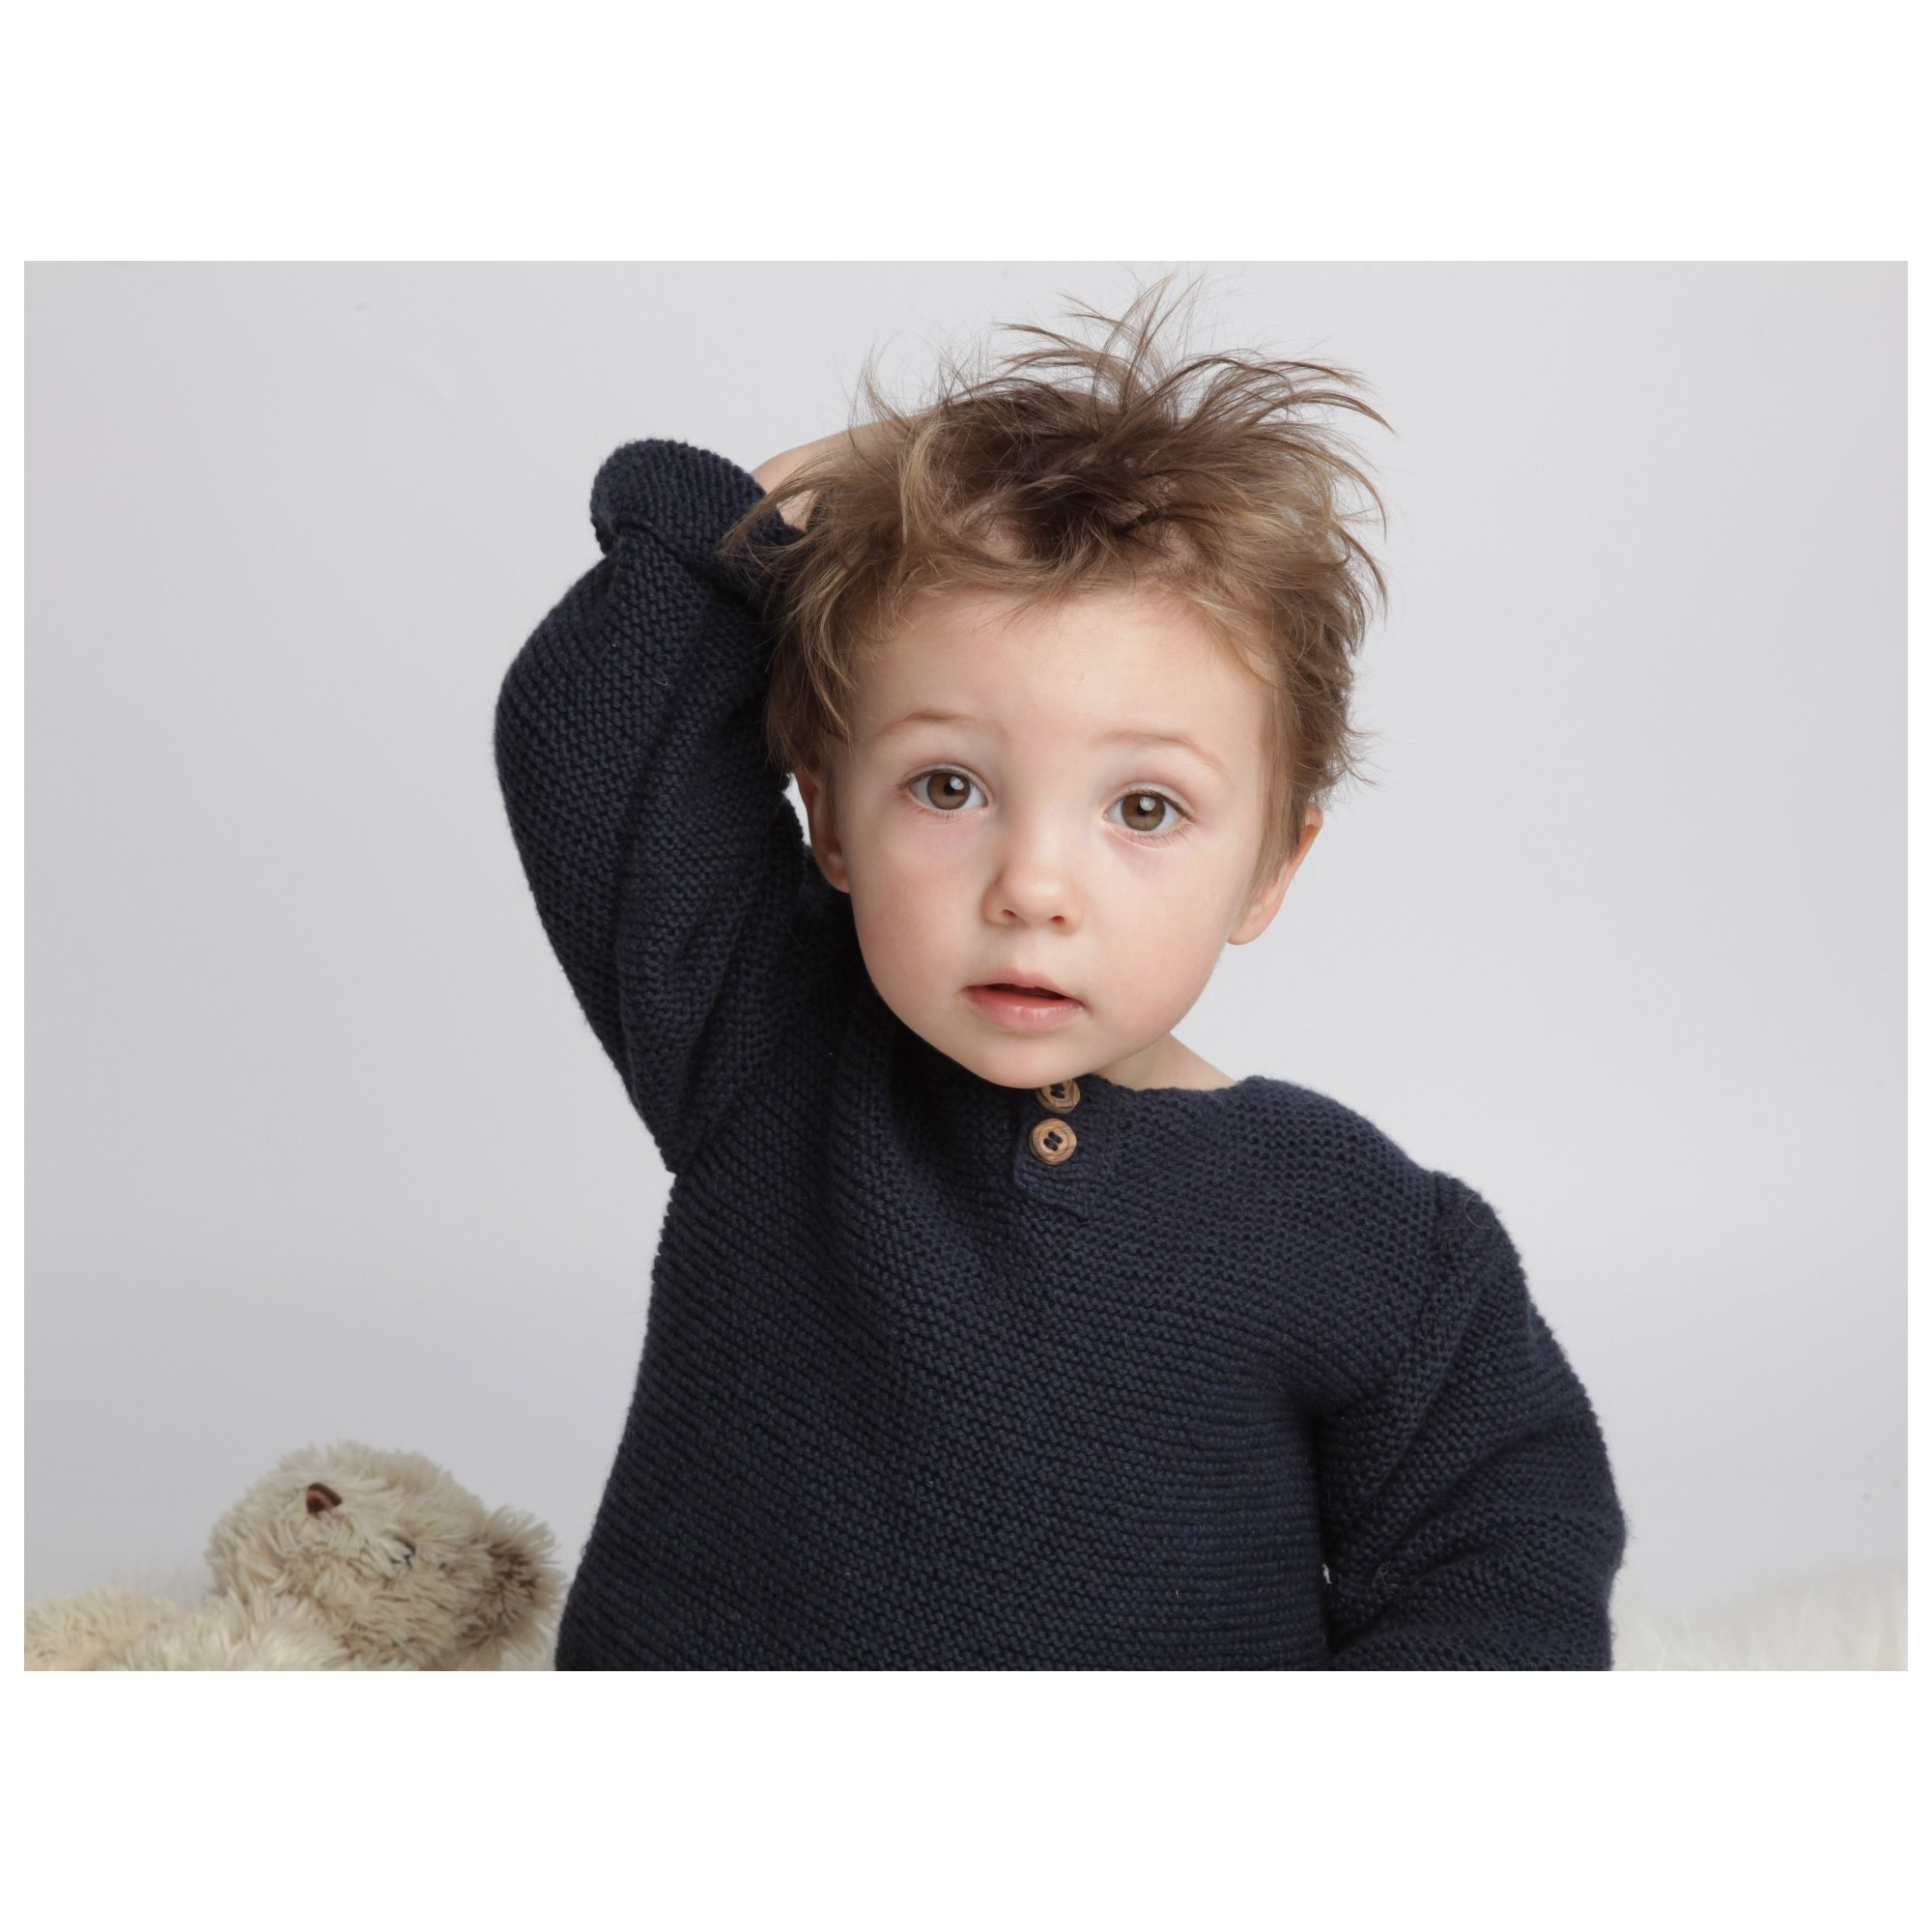 Navy blue baby sweater in moss stitch made from cotton and cachemire - worn